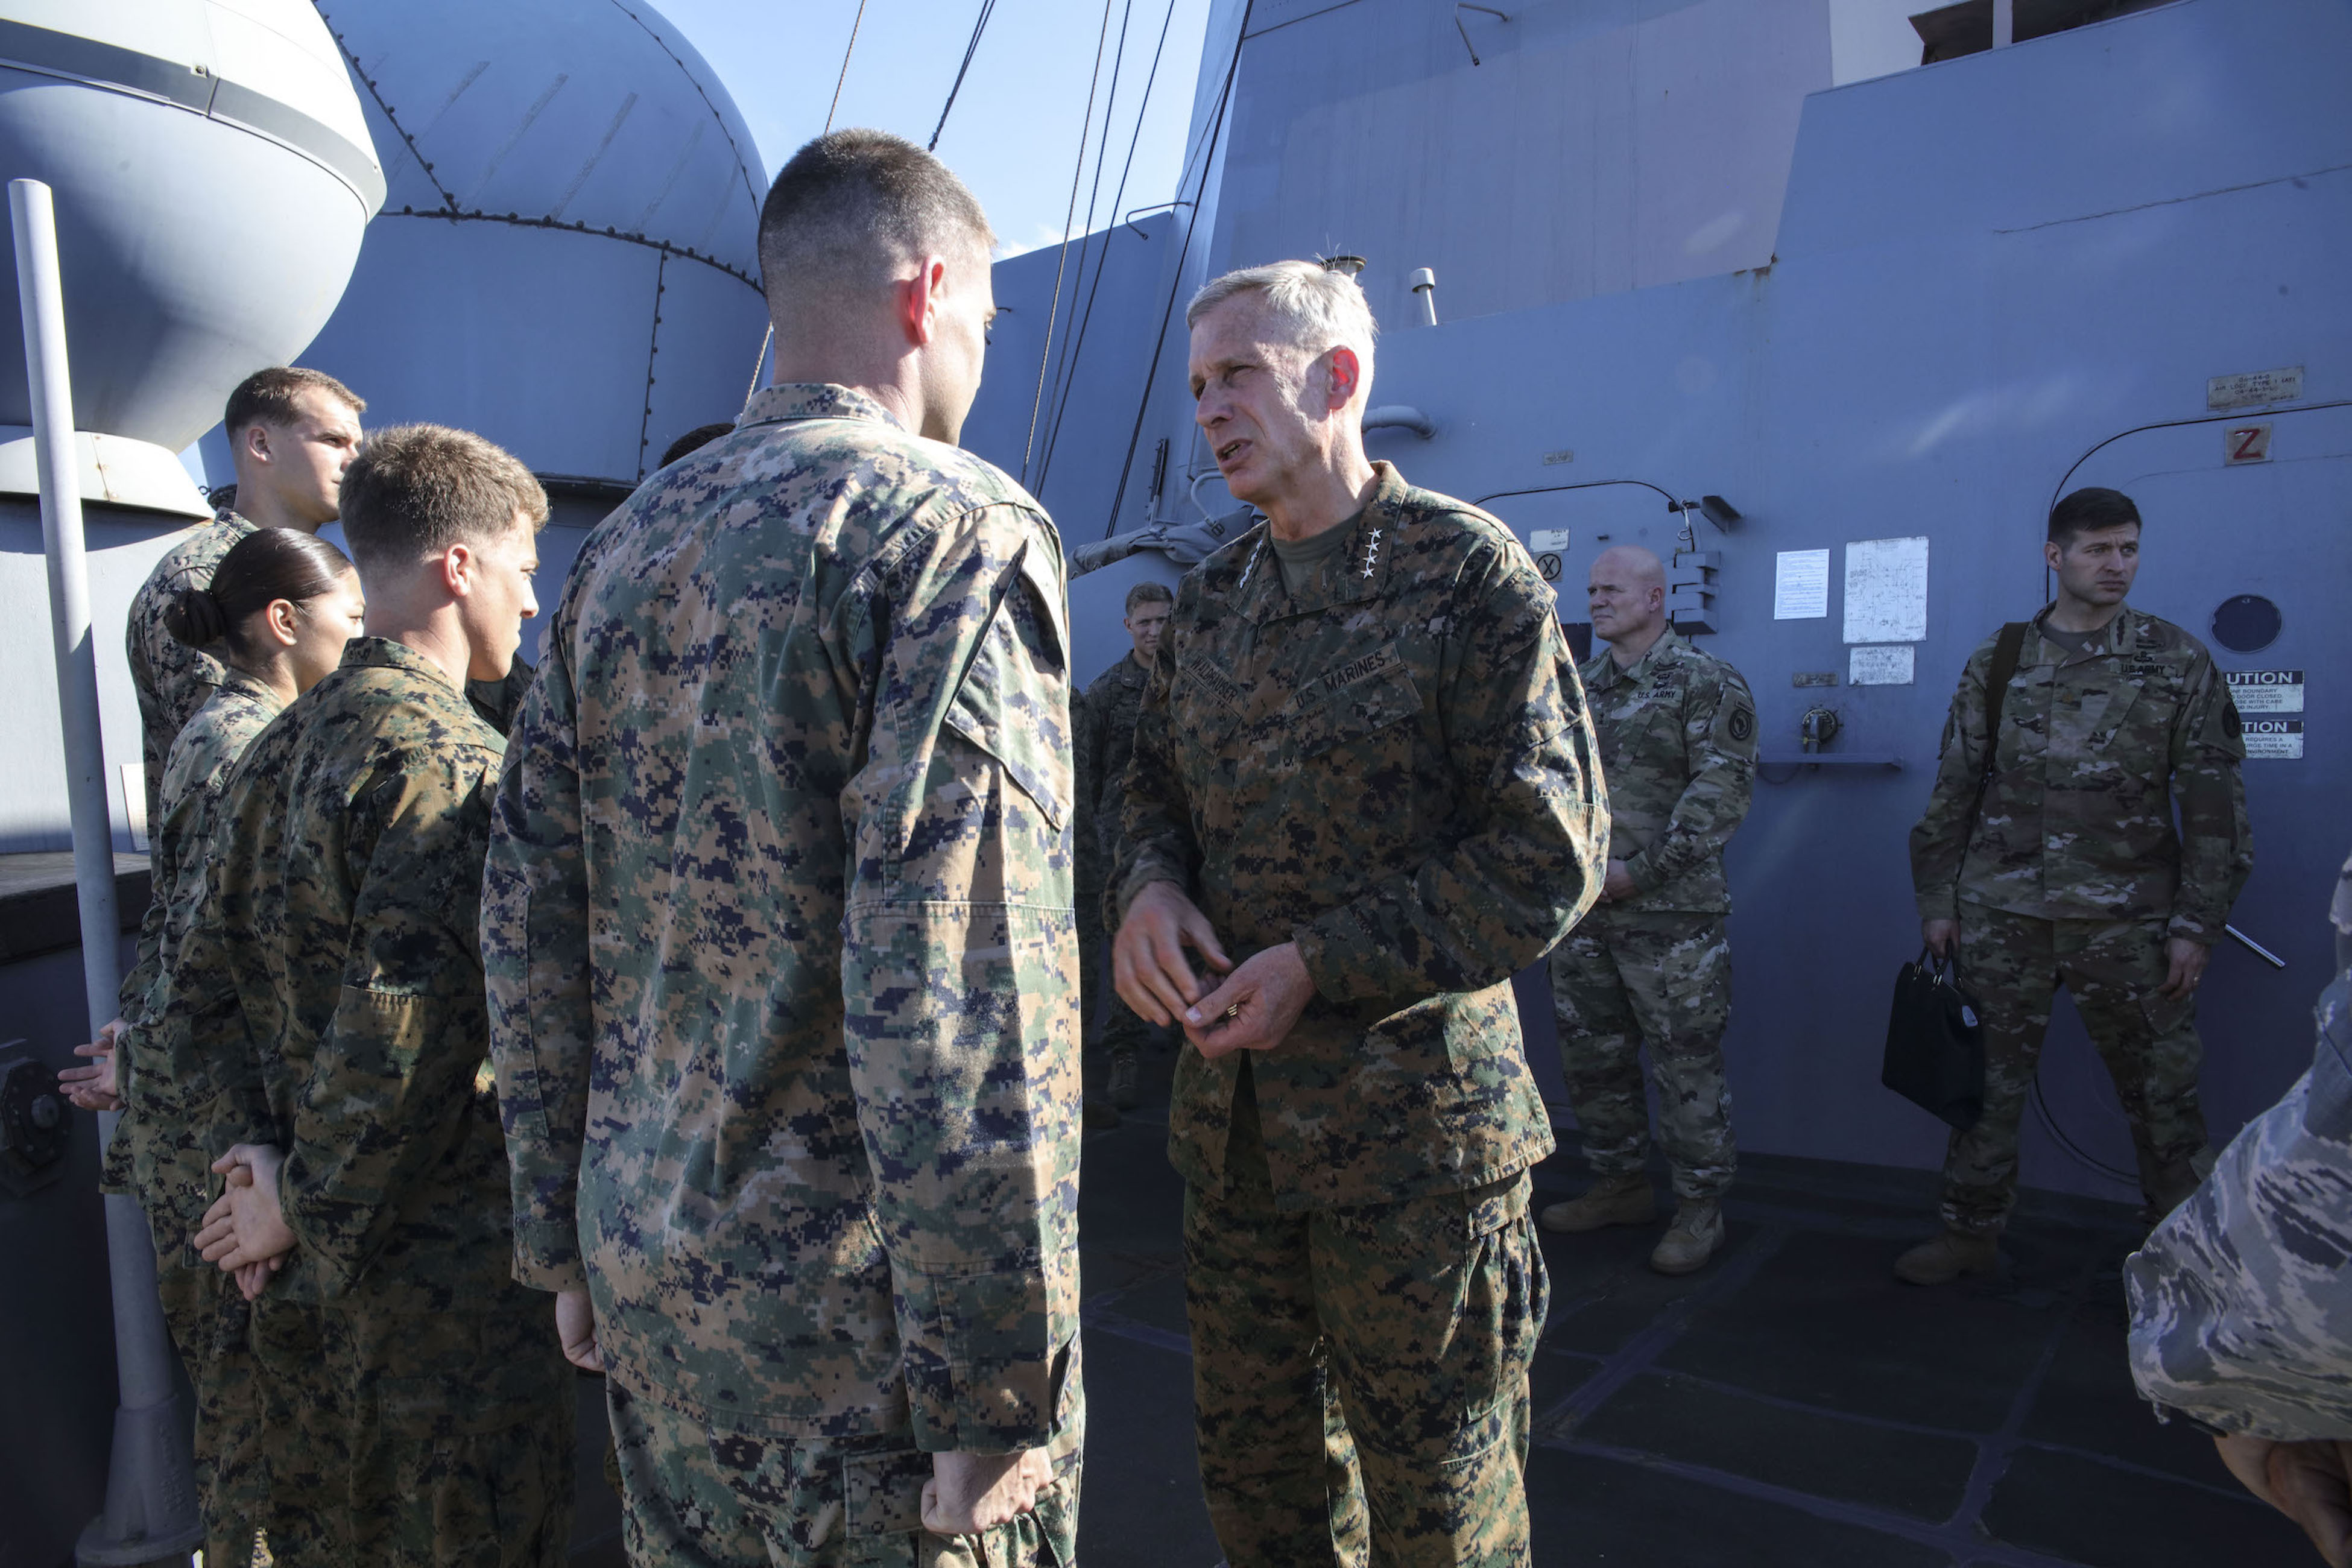 MEDITERRANEAN SEA (Sept. 6, 2017) U.S. Marine Gen. Thomas D. Waldhauser, commander, U.S. Africa Command, speaks with Sailors and Marines aboard the San Antonio-class amphibious transport dock ship USS Mesa Verde (LPD 19) during a visit Sept. 6, 2017. The ship is deployed with the Bataan Amphibious Ready Group and 24th Marine Expeditionary Unit to support maritime security operations and theater security cooperation efforts in the U.S. 6th Fleet area of operations. (U.S. Navy photo by Mass Communication Specialist 2nd Class Brent Pyfrom/Released)